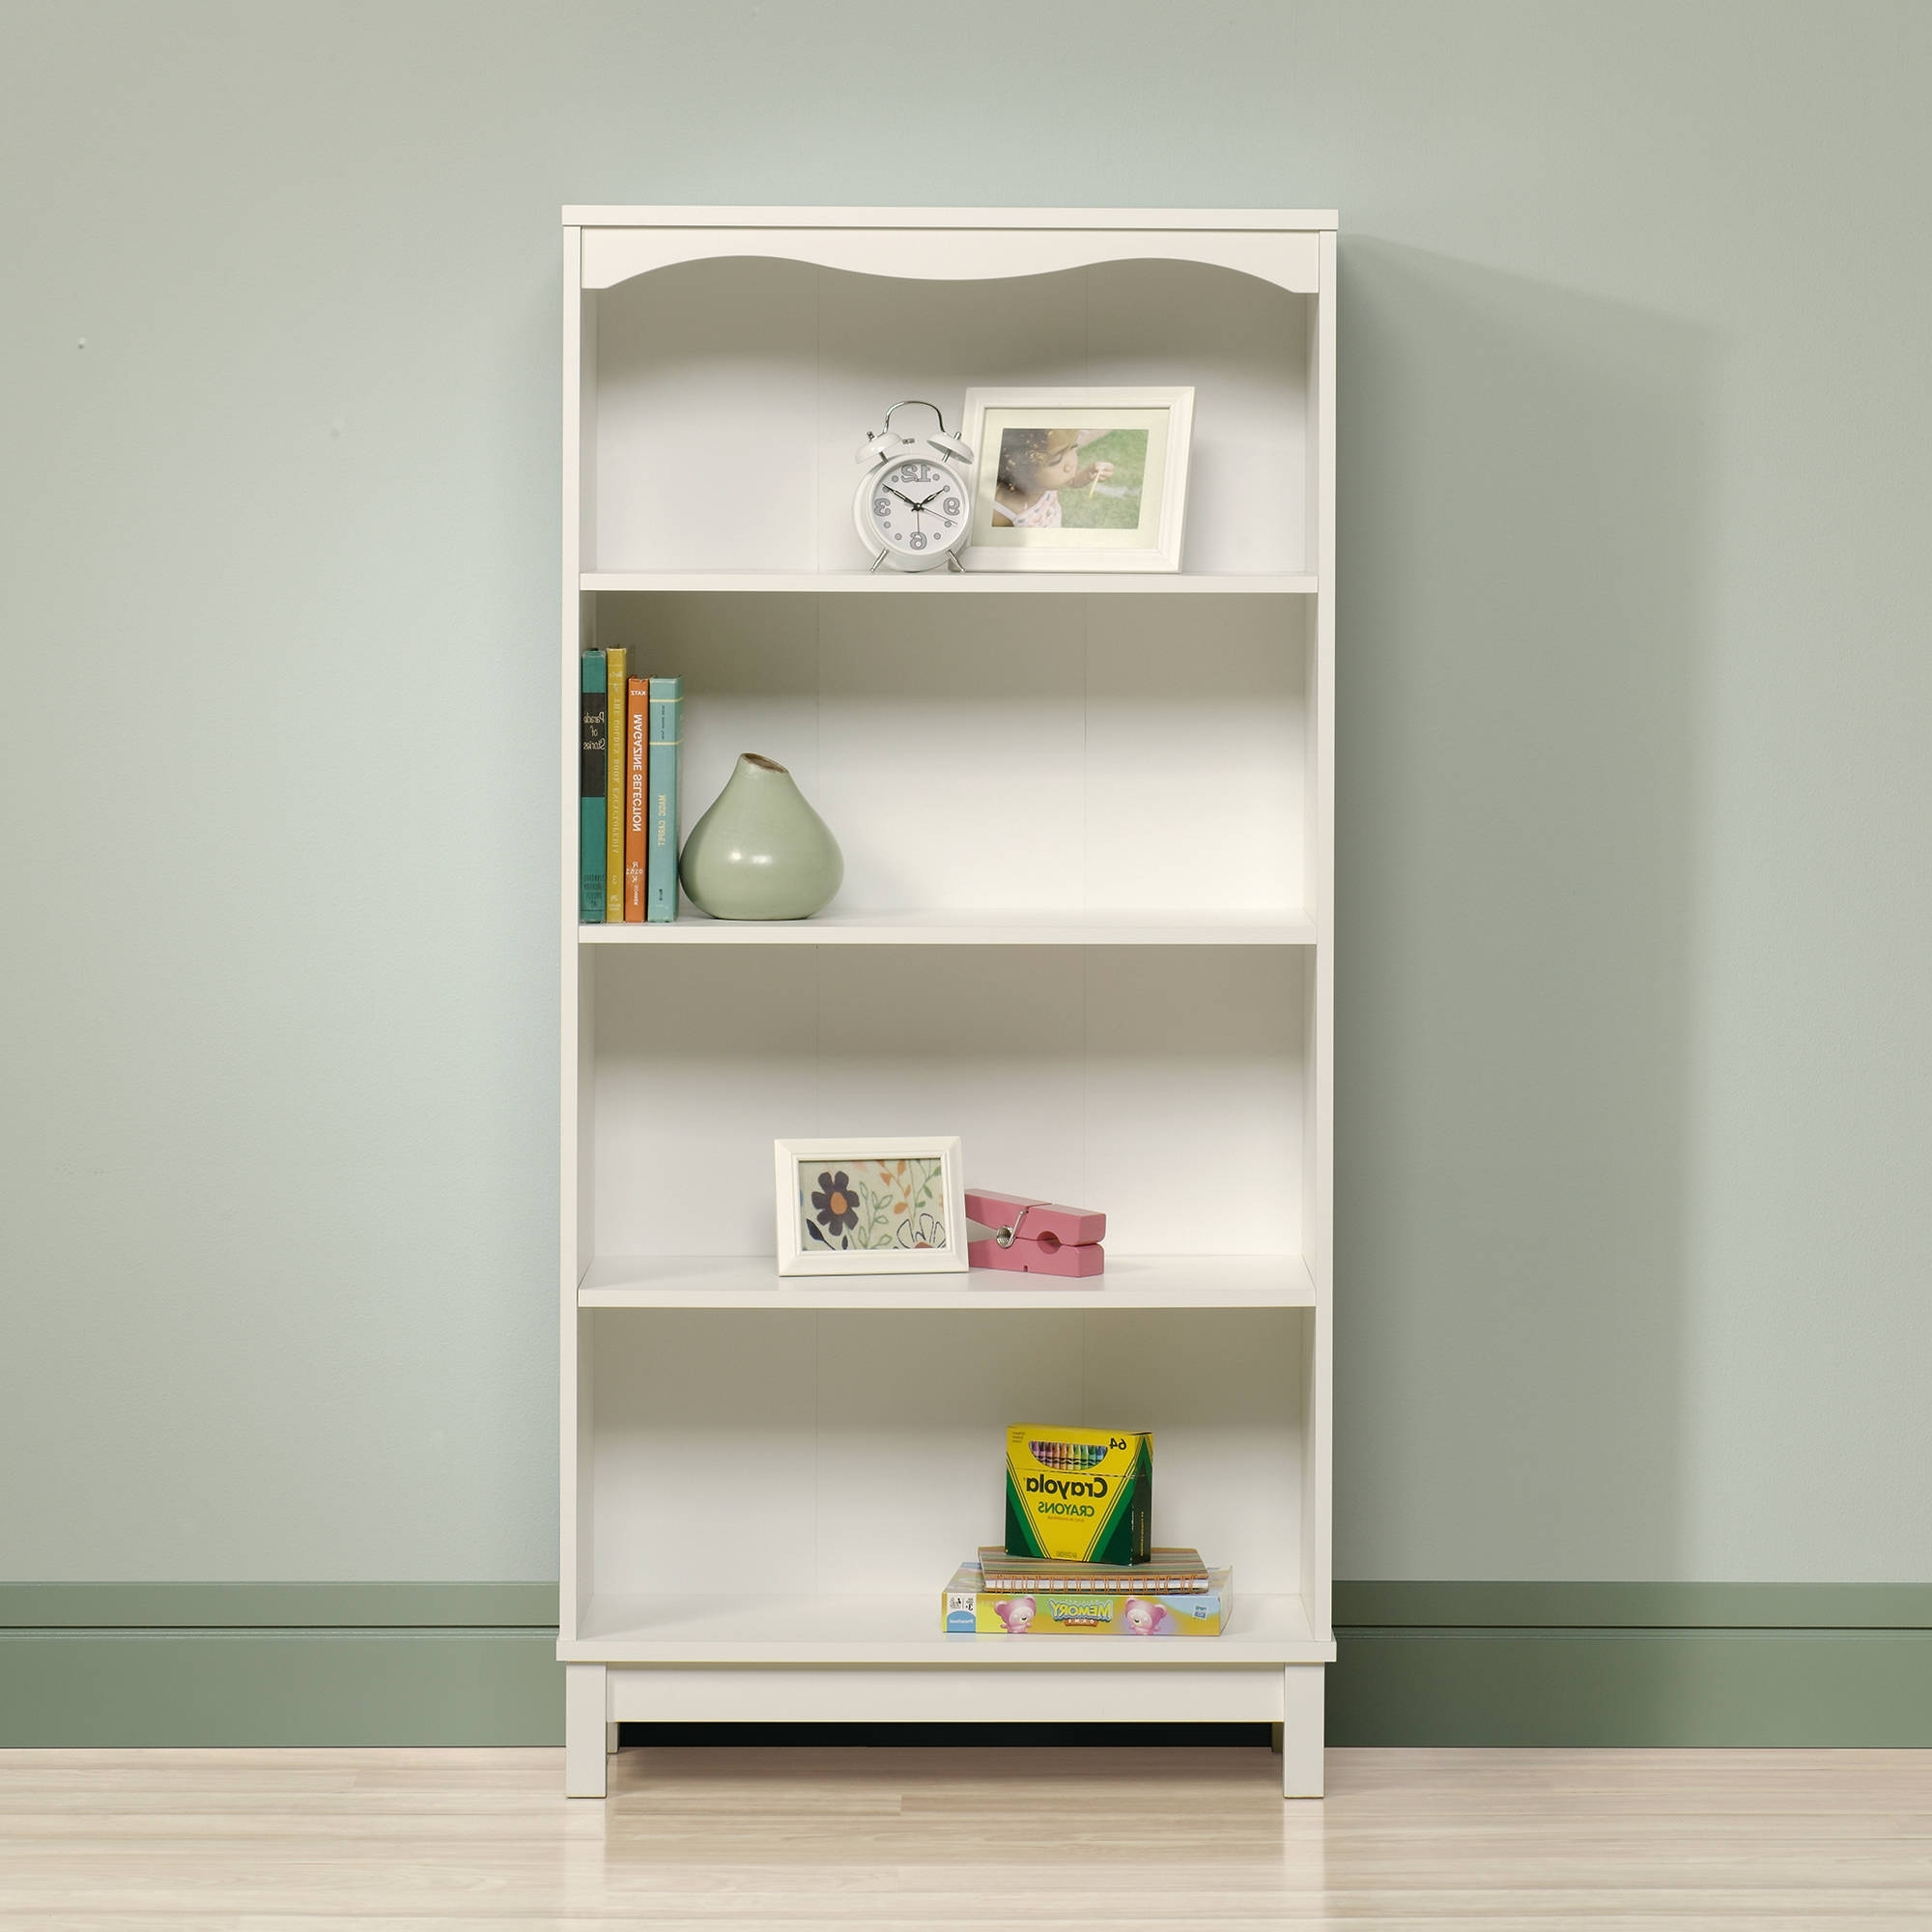 Sauder Storybook Bookcase, Soft White – Walmart Within Most Popular Walmart Bookcases (View 11 of 15)